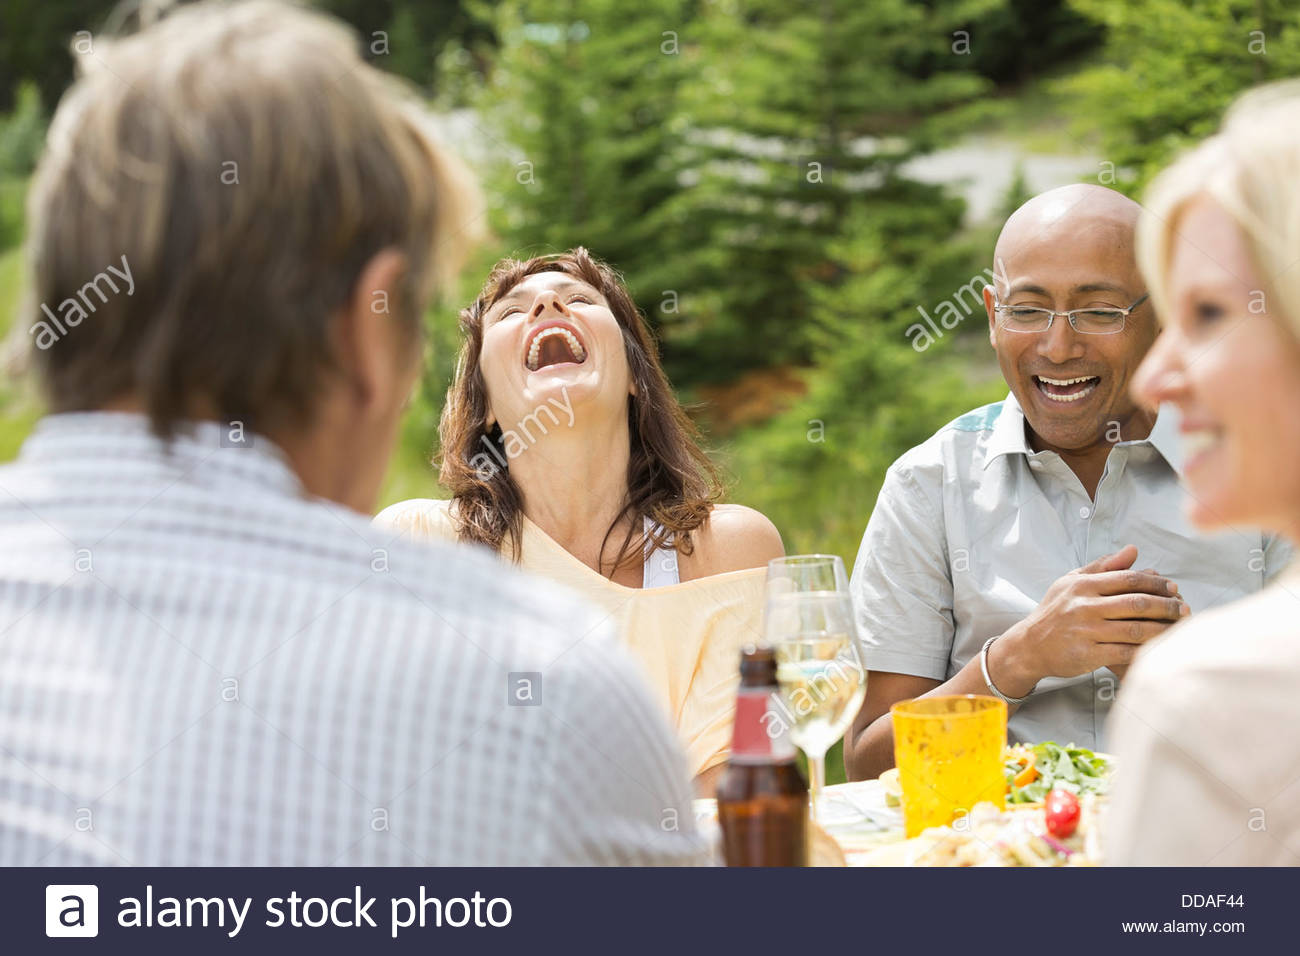 Couple laughing during social gathering - Stock Image